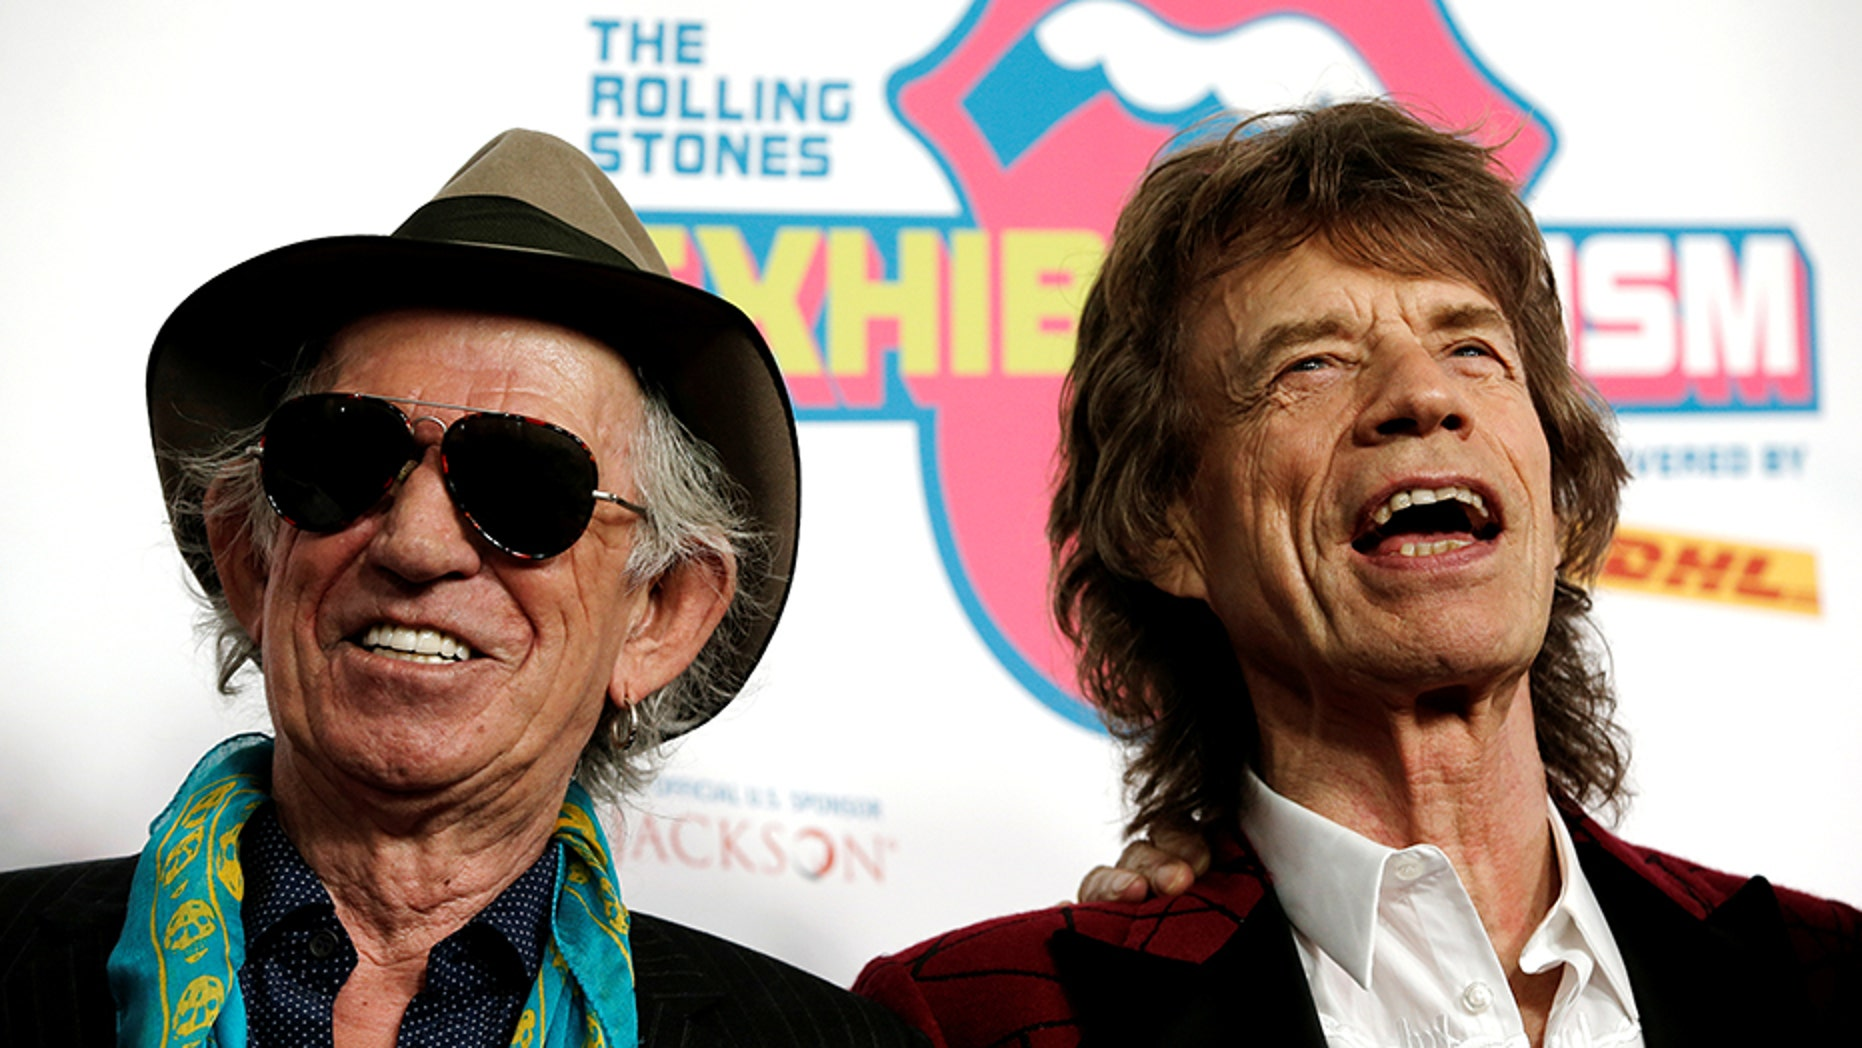 Keith Richards (left) apologized Wednesday for comments he made about bandmate Mick Jagger (right) in an article from The Wall Street Journal.